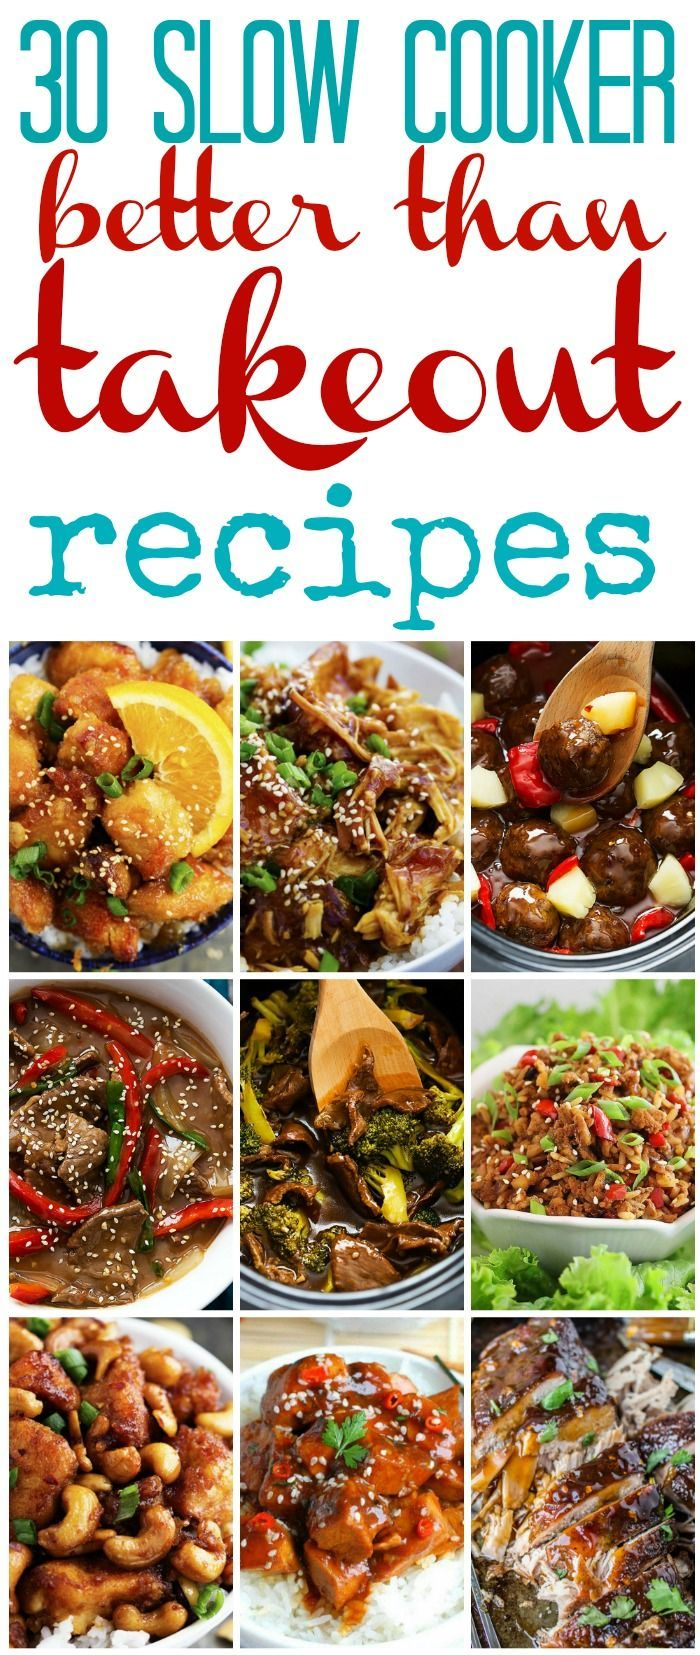 30 Slow Cooker BETTER THAN TAKEOUT recipes rounded up all in one spot! They are all amazing!